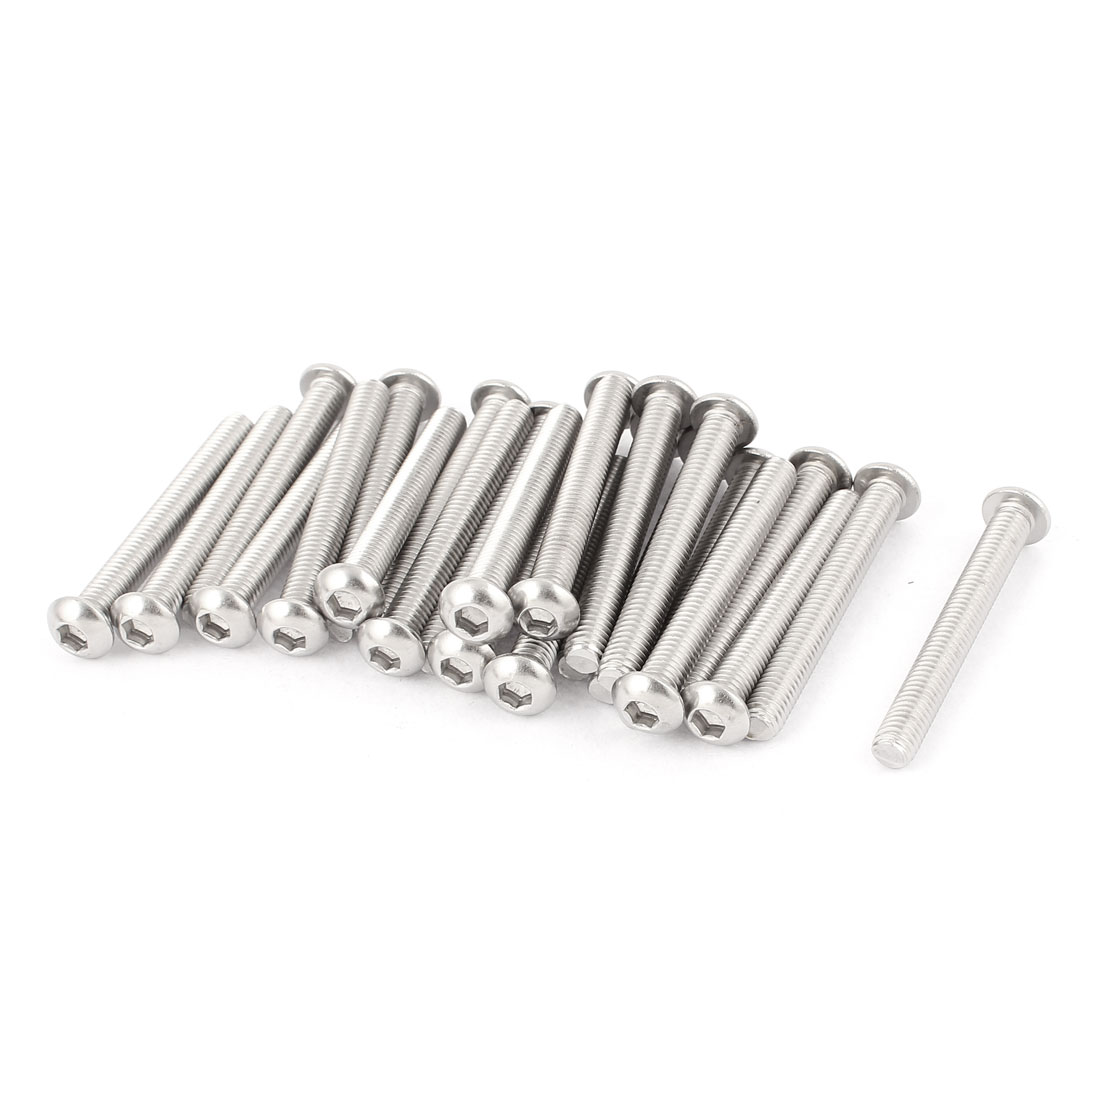 M6x50mm Stainless Steel Button Head Hex Socket Cap Screws Silver Tone 25Pcs